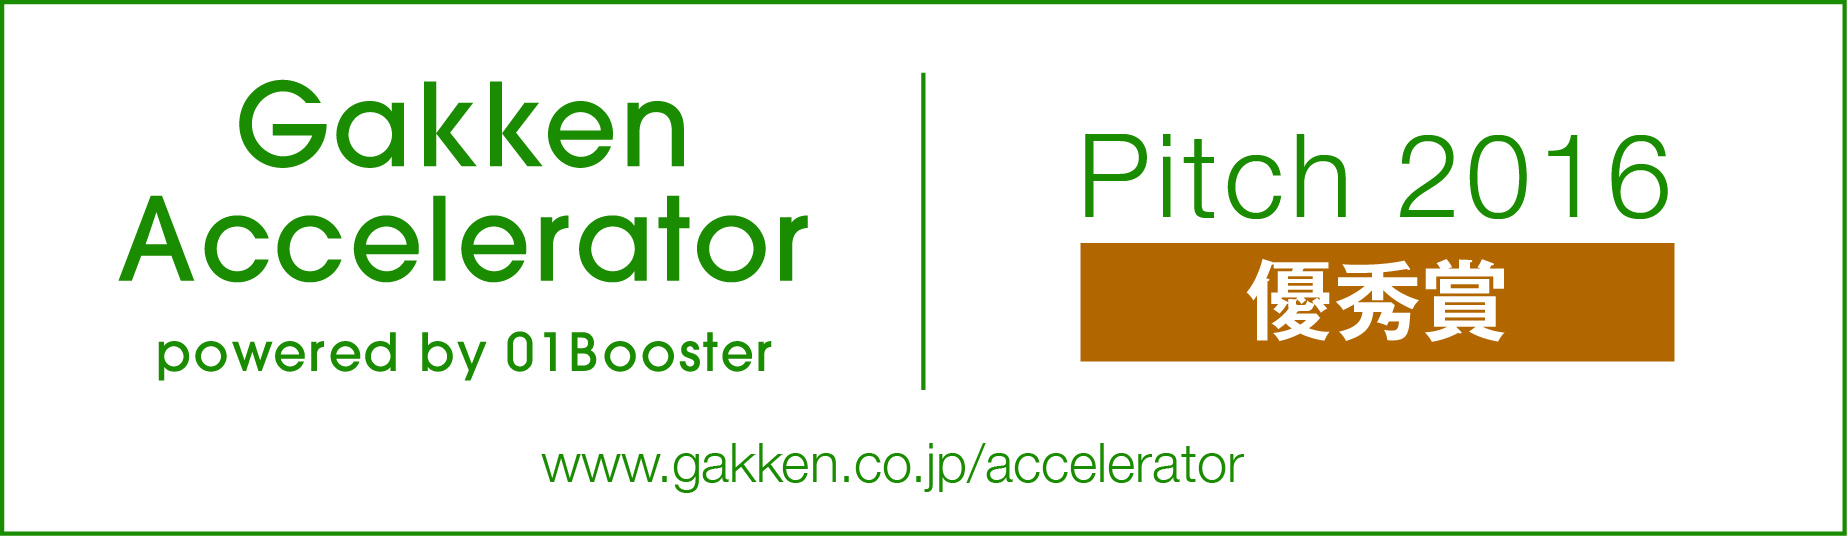 Gakken Accelerator Pitch 2016 優秀賞